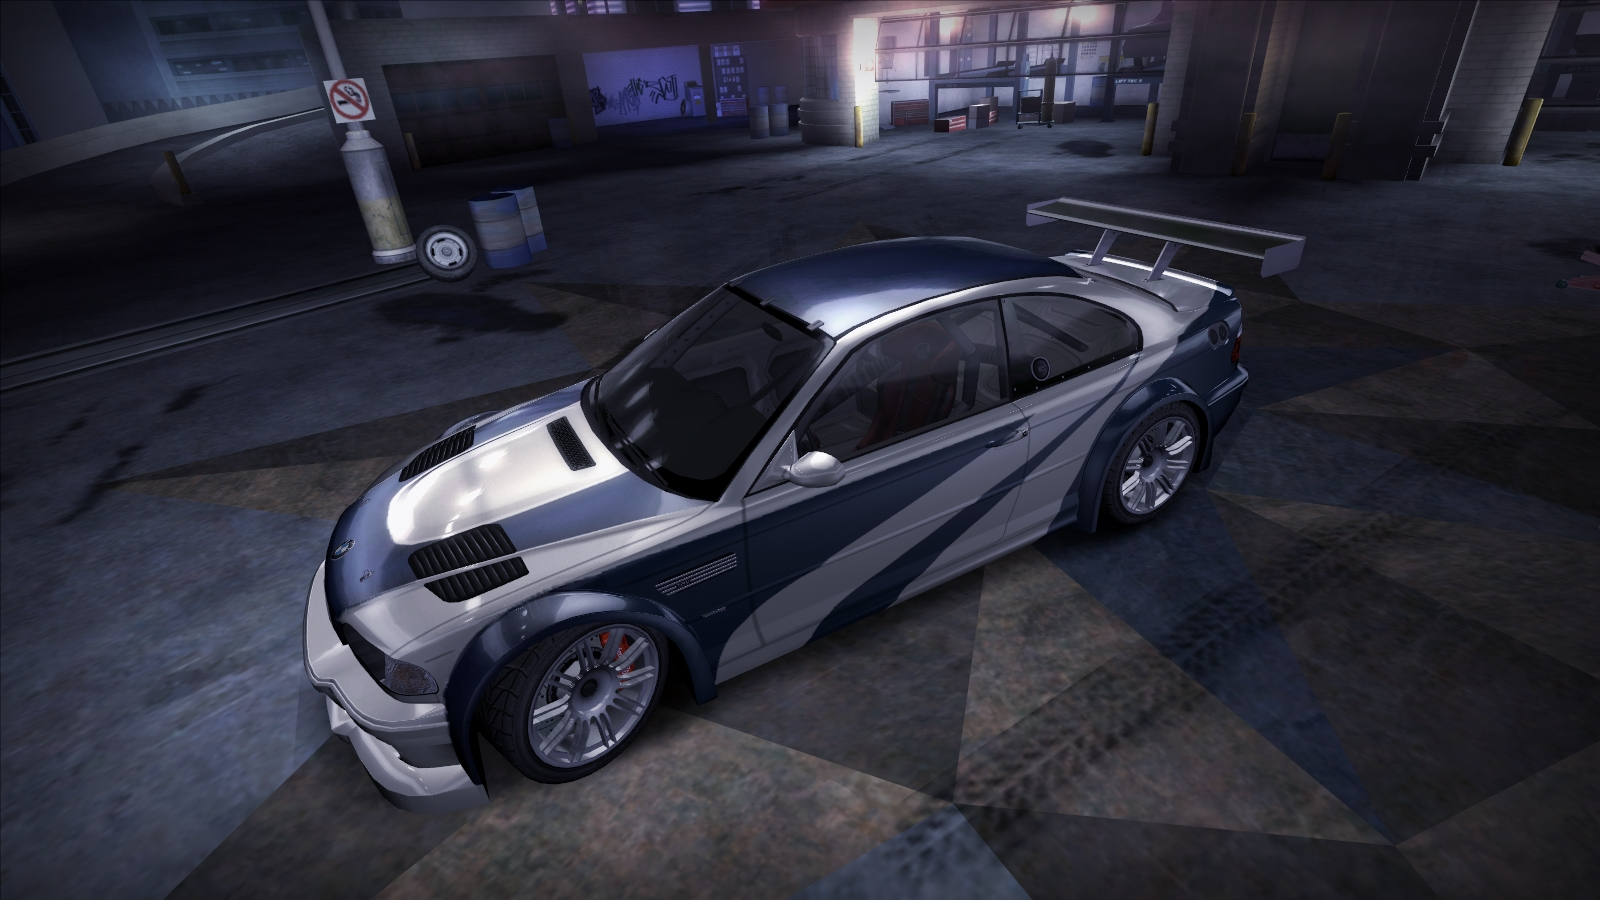 Nfs Carbon Cars Wallpaper My Bmw M3 Gtr E46 With Hero Vinyl From Nfs Most Wanted